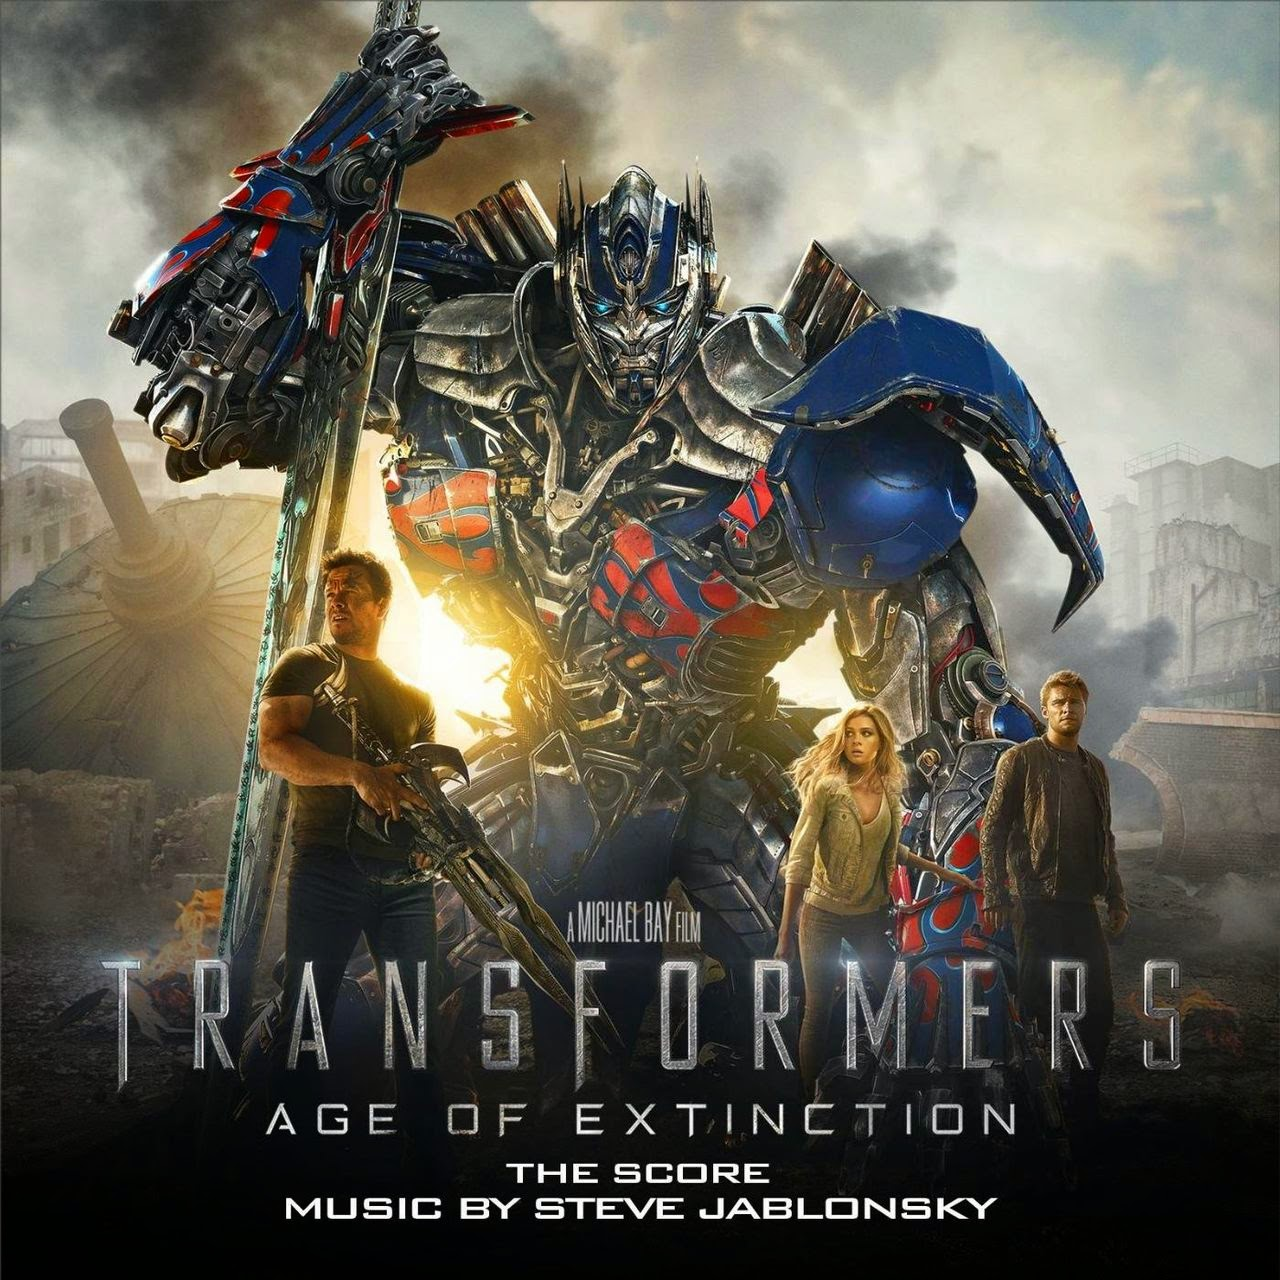 Download Transformers Age of Extinction Soundtrack Baixar cd MP3 2014